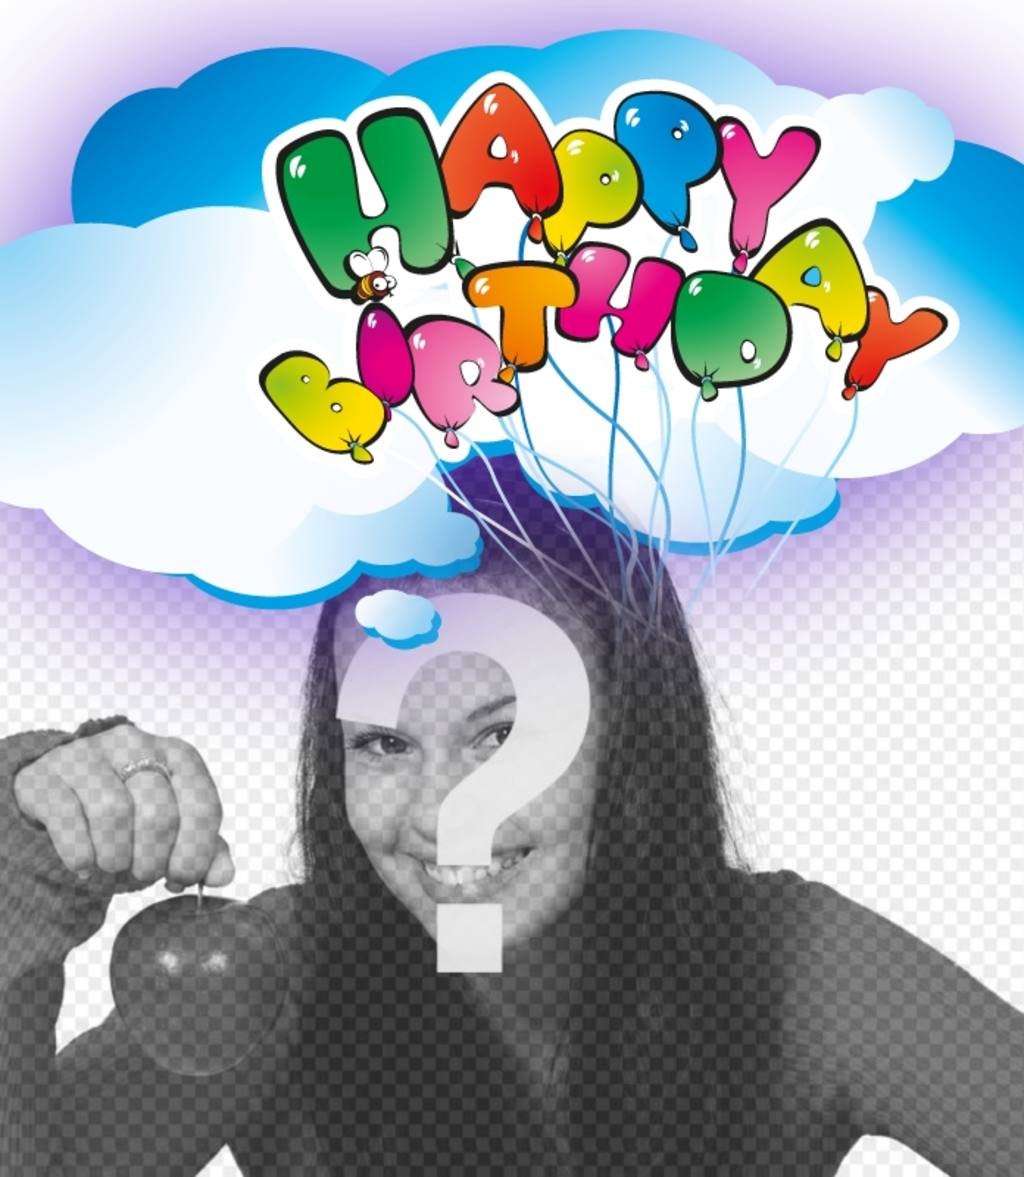 Postcard Happy birthday greeting with balloons